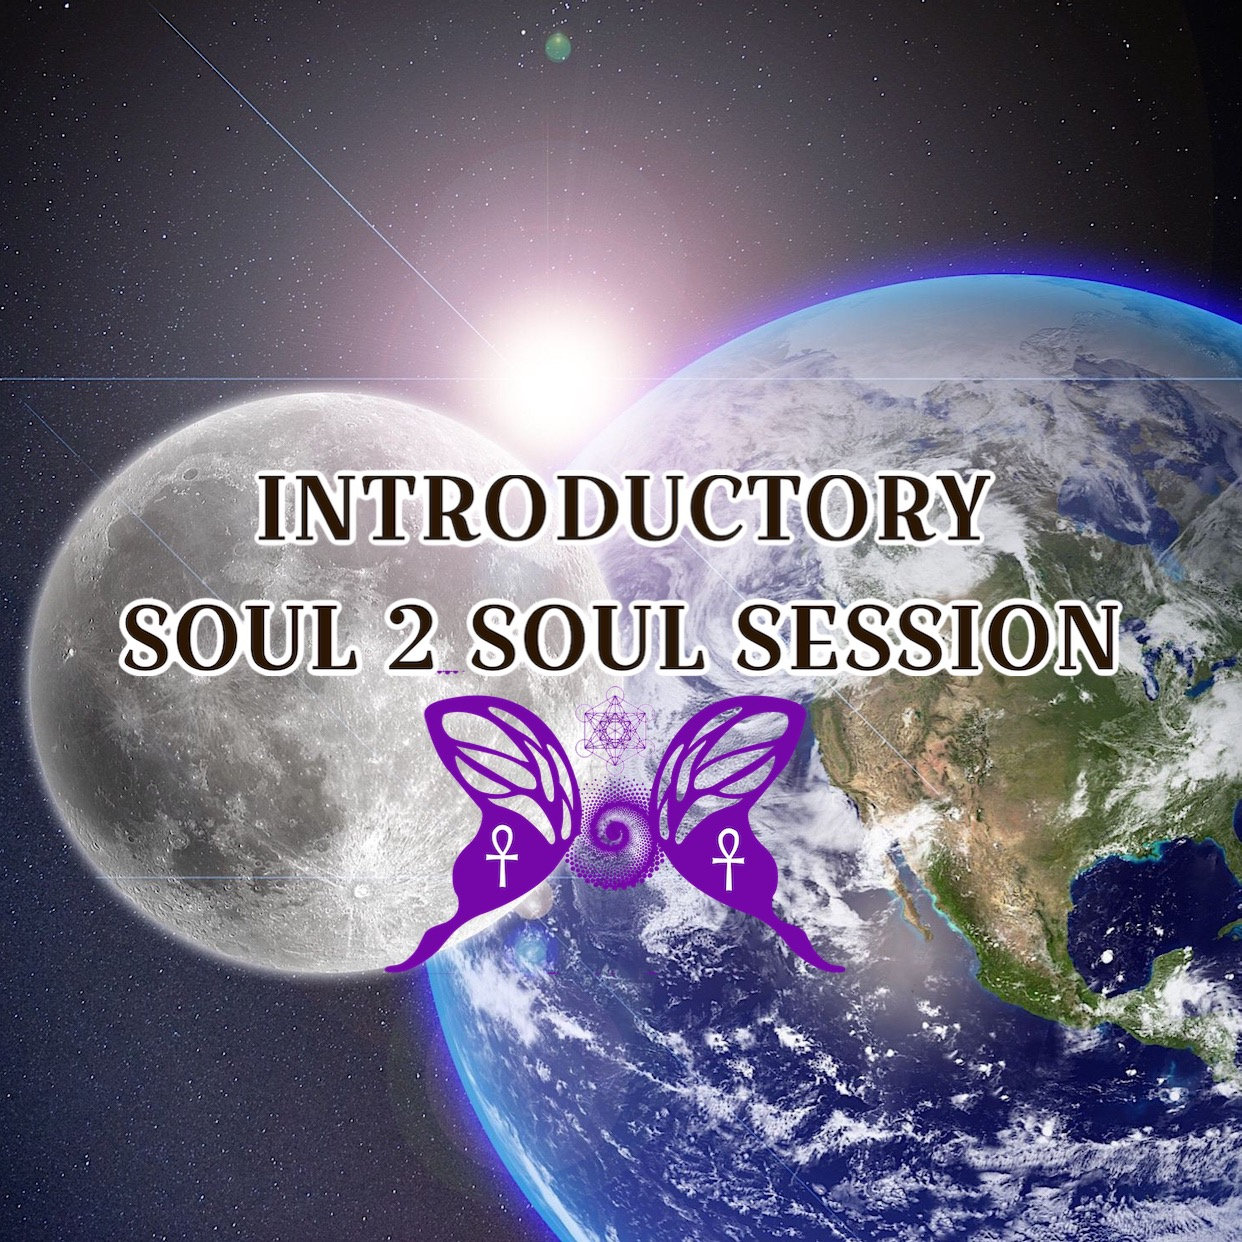 INTRODUCTORY SOUL 2 SOUL SESSION